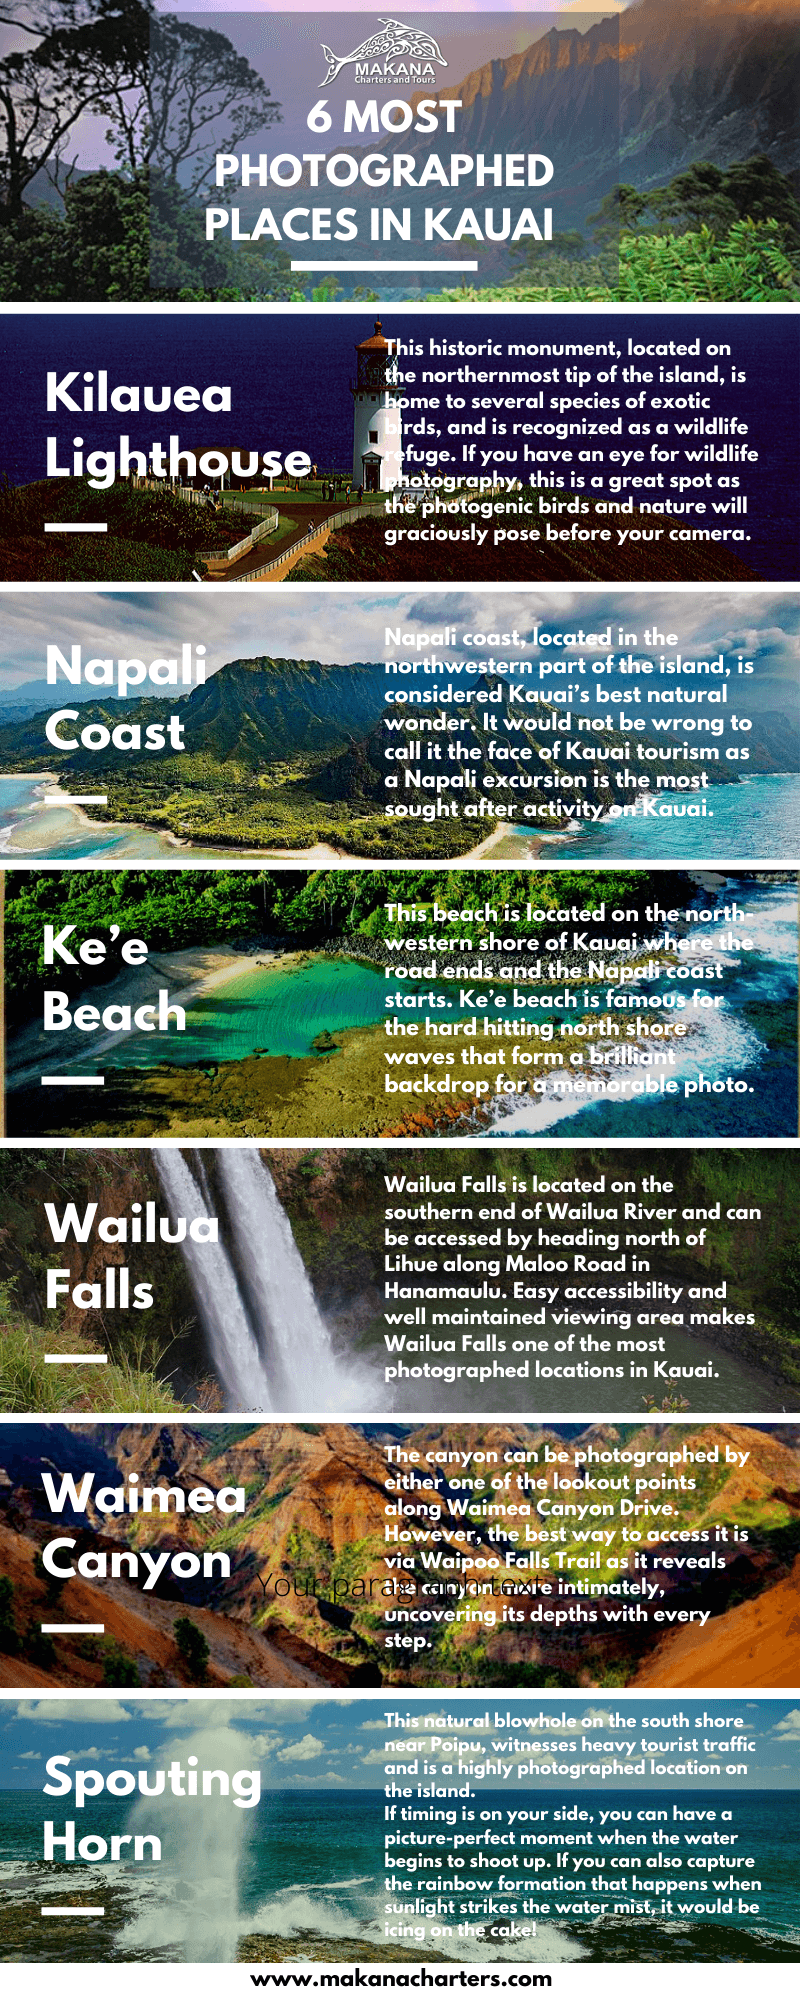 6 Most Photographed Locations in Kauai [Infographic]